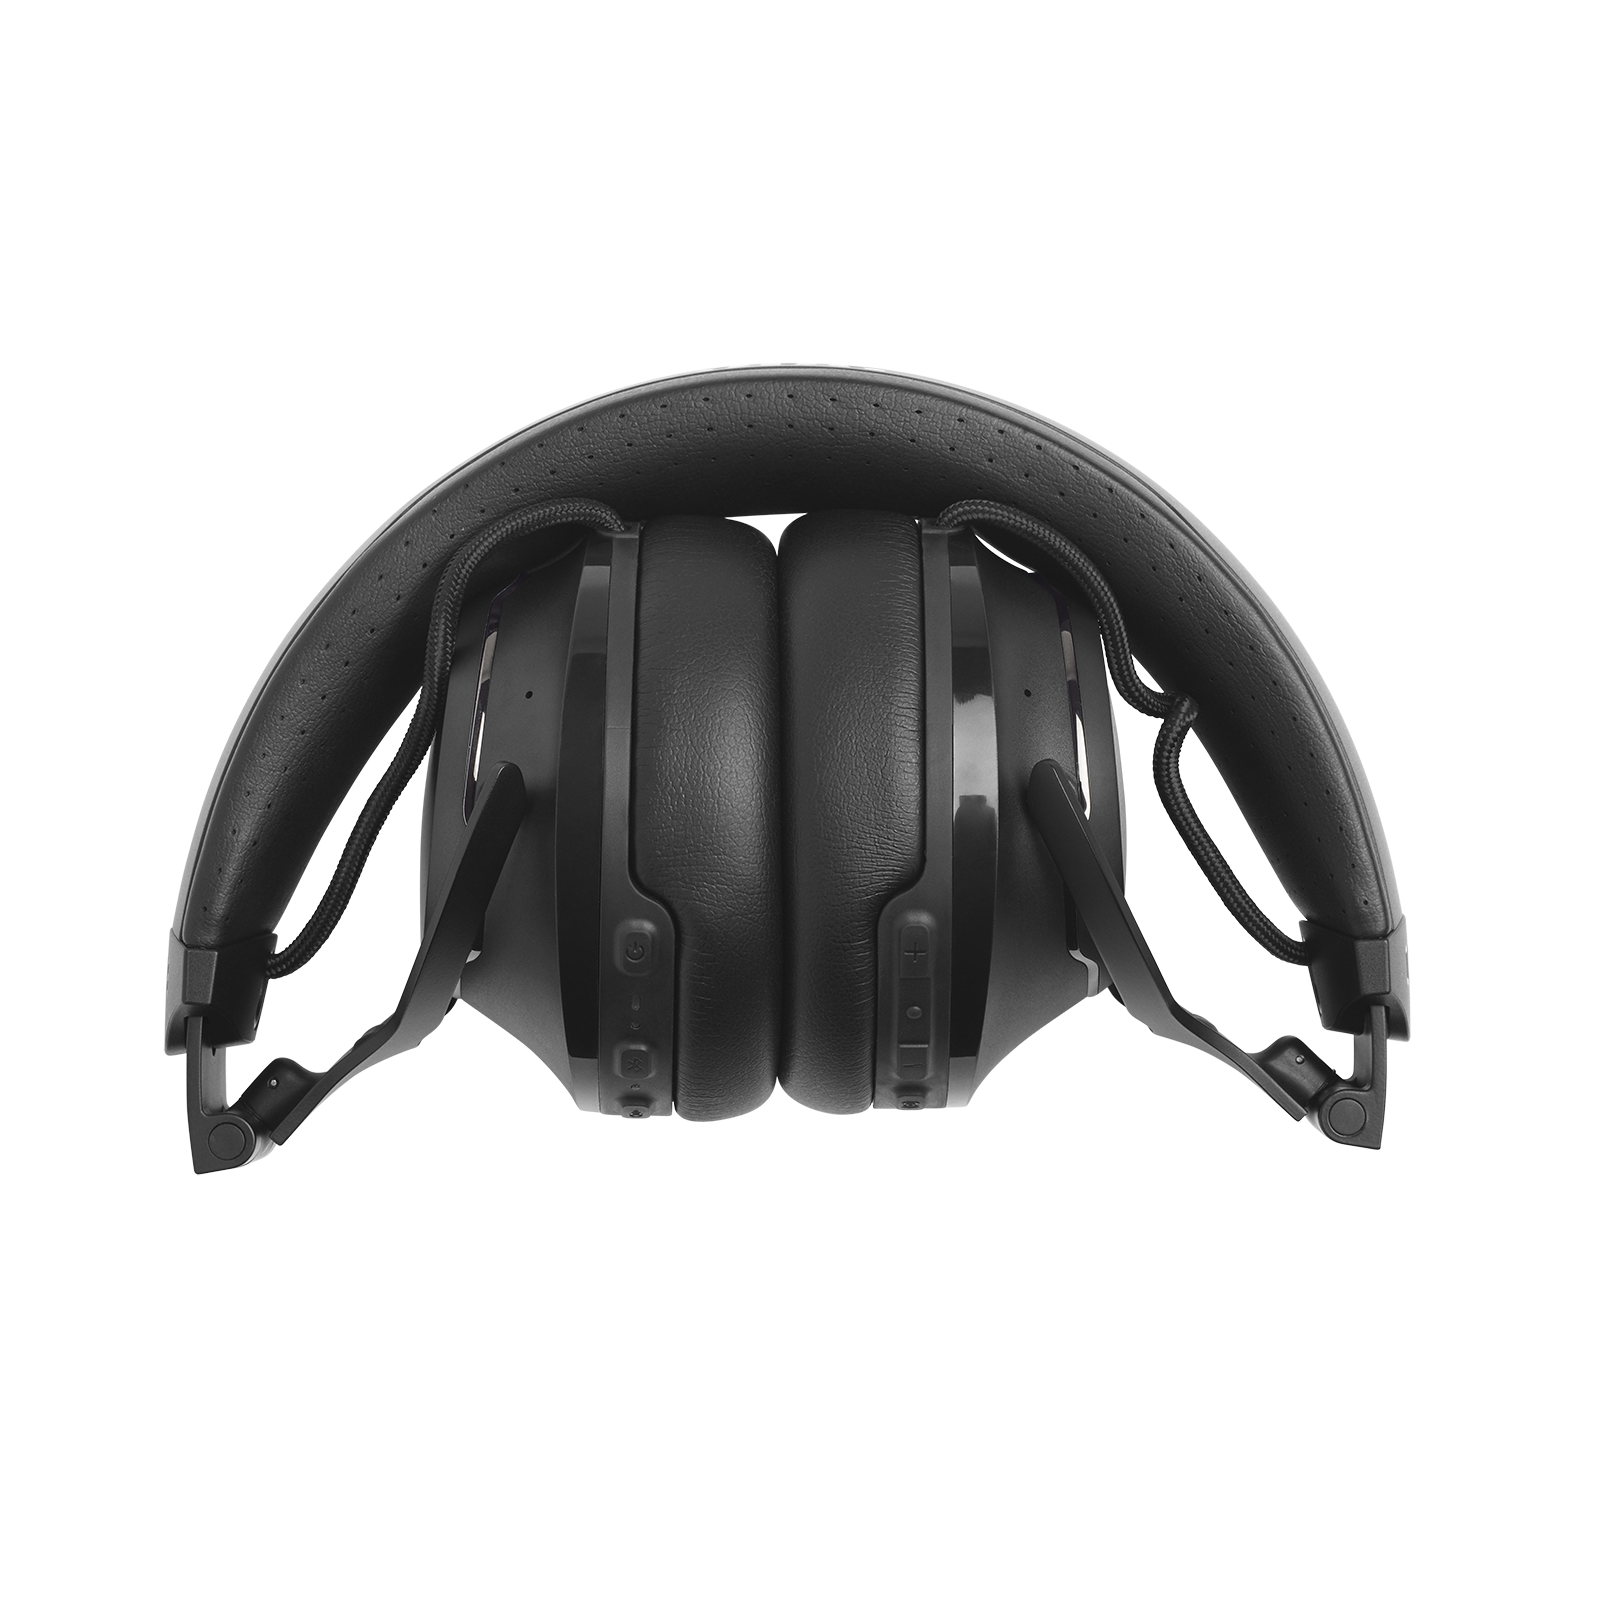 JBL CLUB 700BT - Black - Wireless on-ear headphones - Detailshot 3